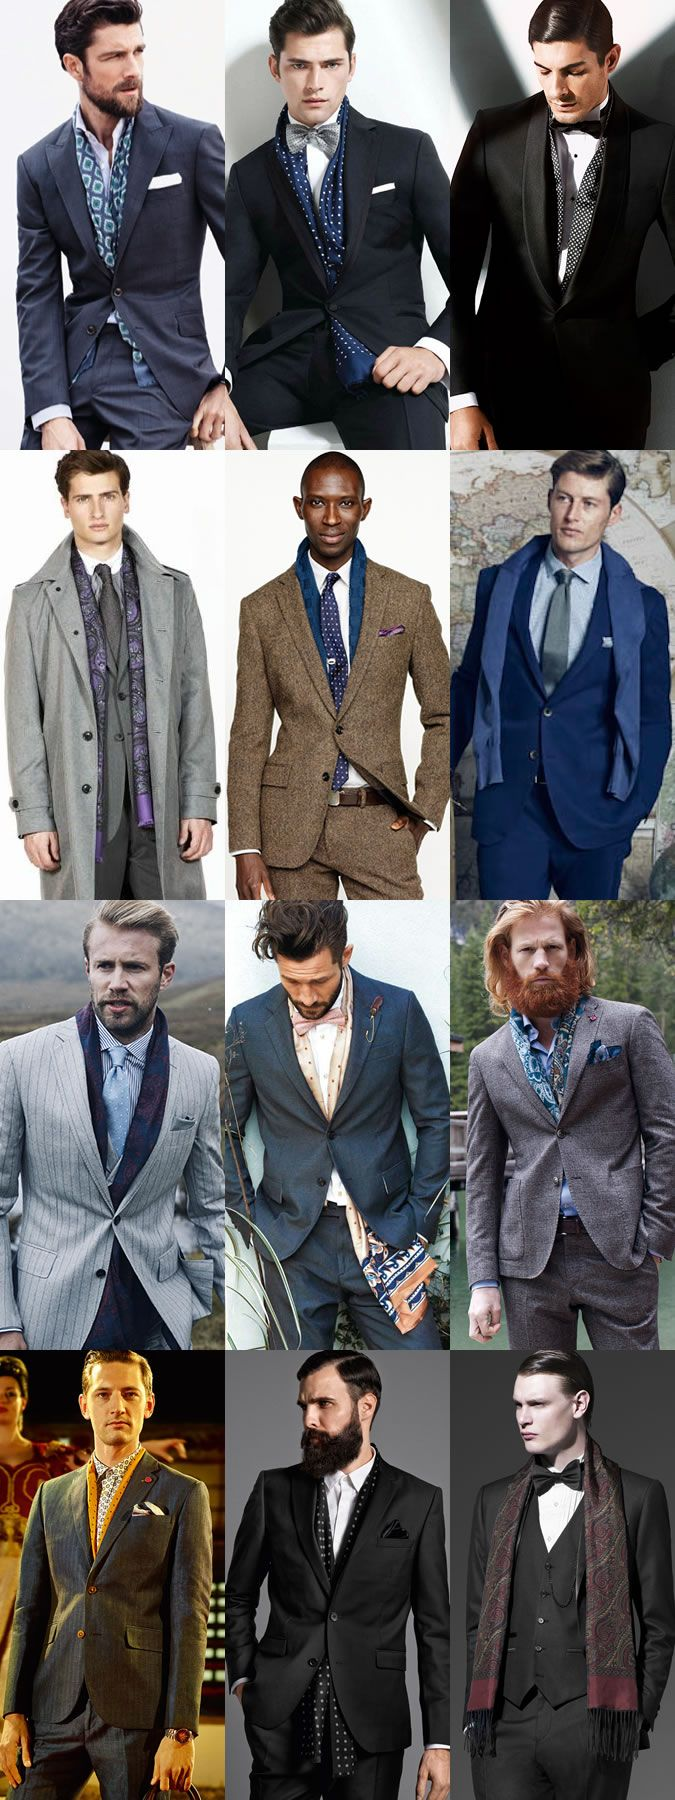 Men's Silk Scarves Formal Outfit Inspiration Lookbook